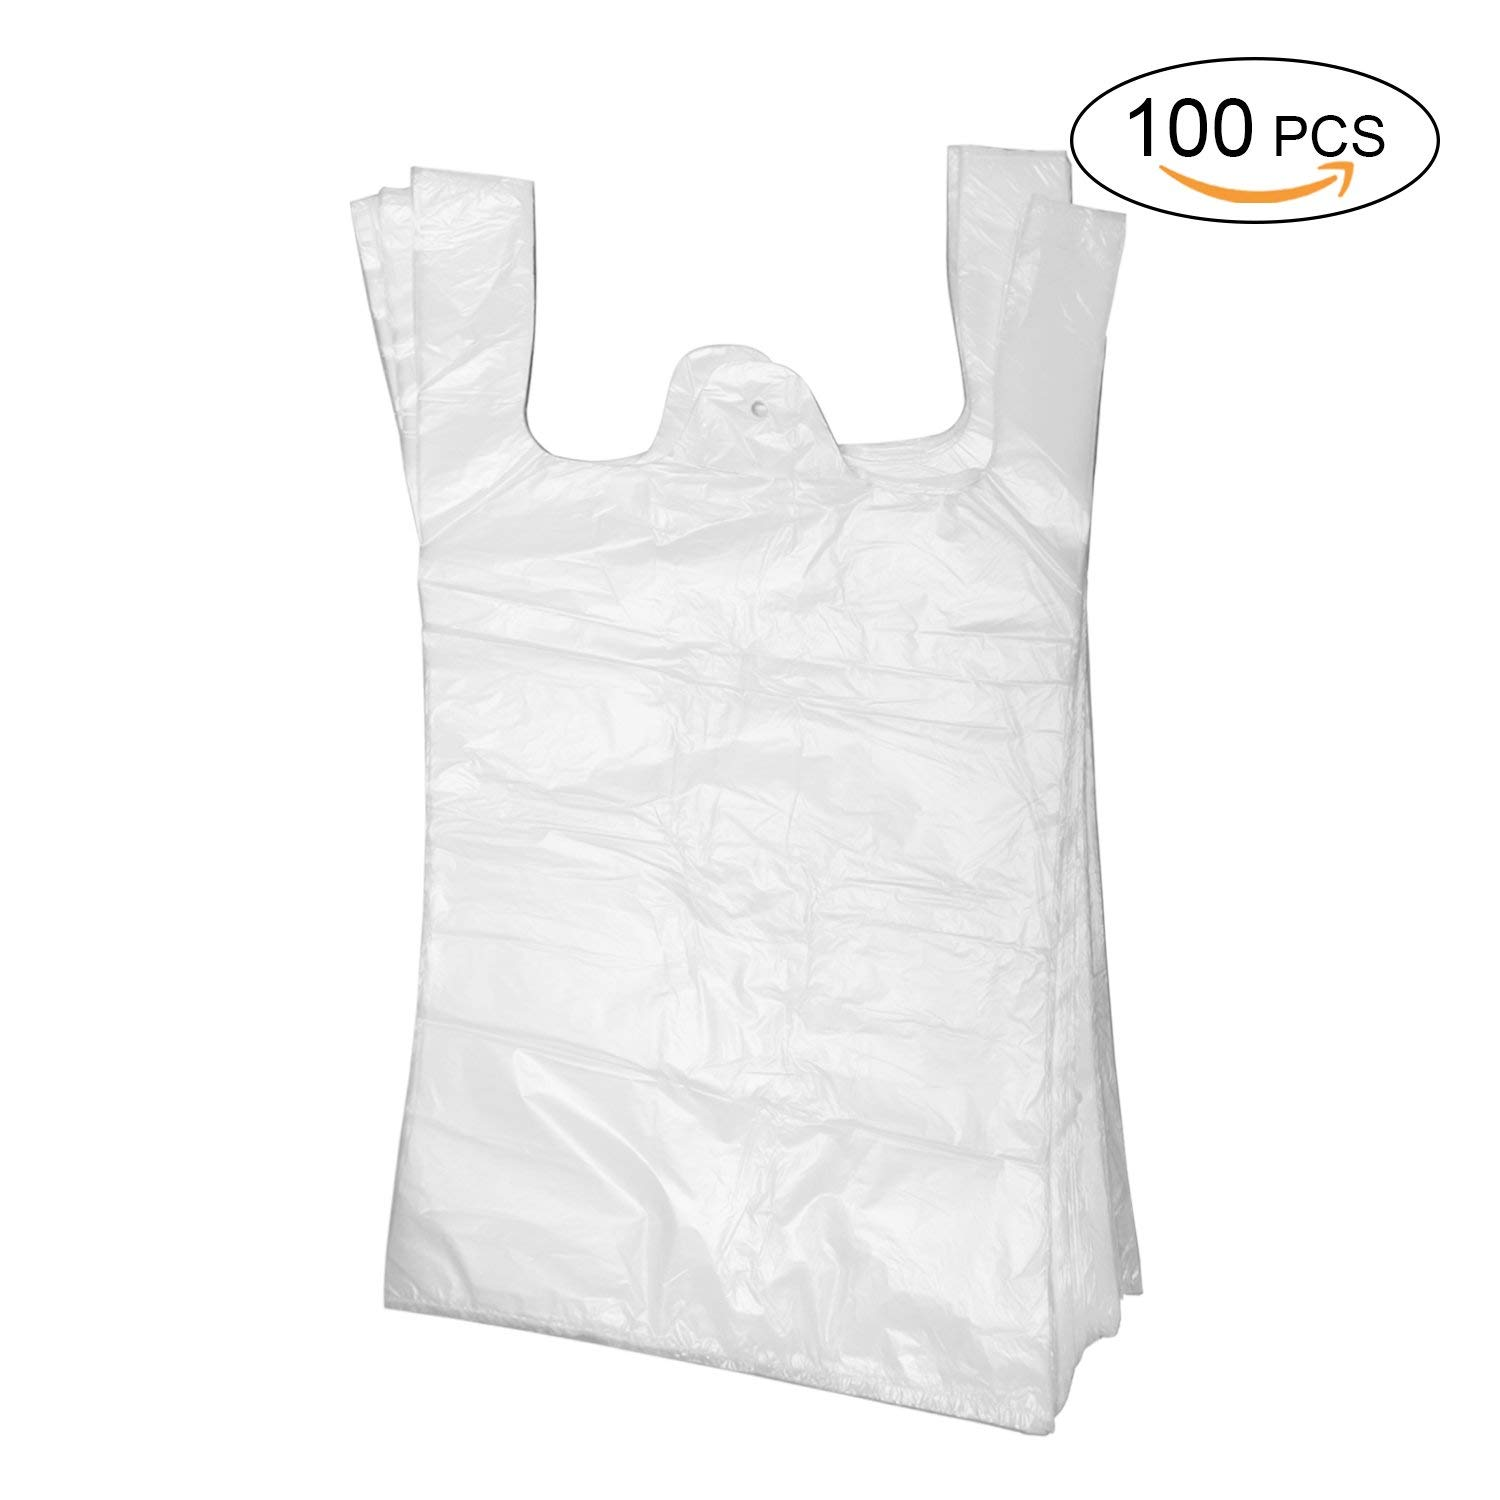 Topgalaxy.Z Plastic T Shirt Bags, Shopping Bags, Merchandise Bags,Plain Grocery Bags, kitchen trash bags, Reusable Grocery Plastic Bags 100 Count (Small trash bags- handle)